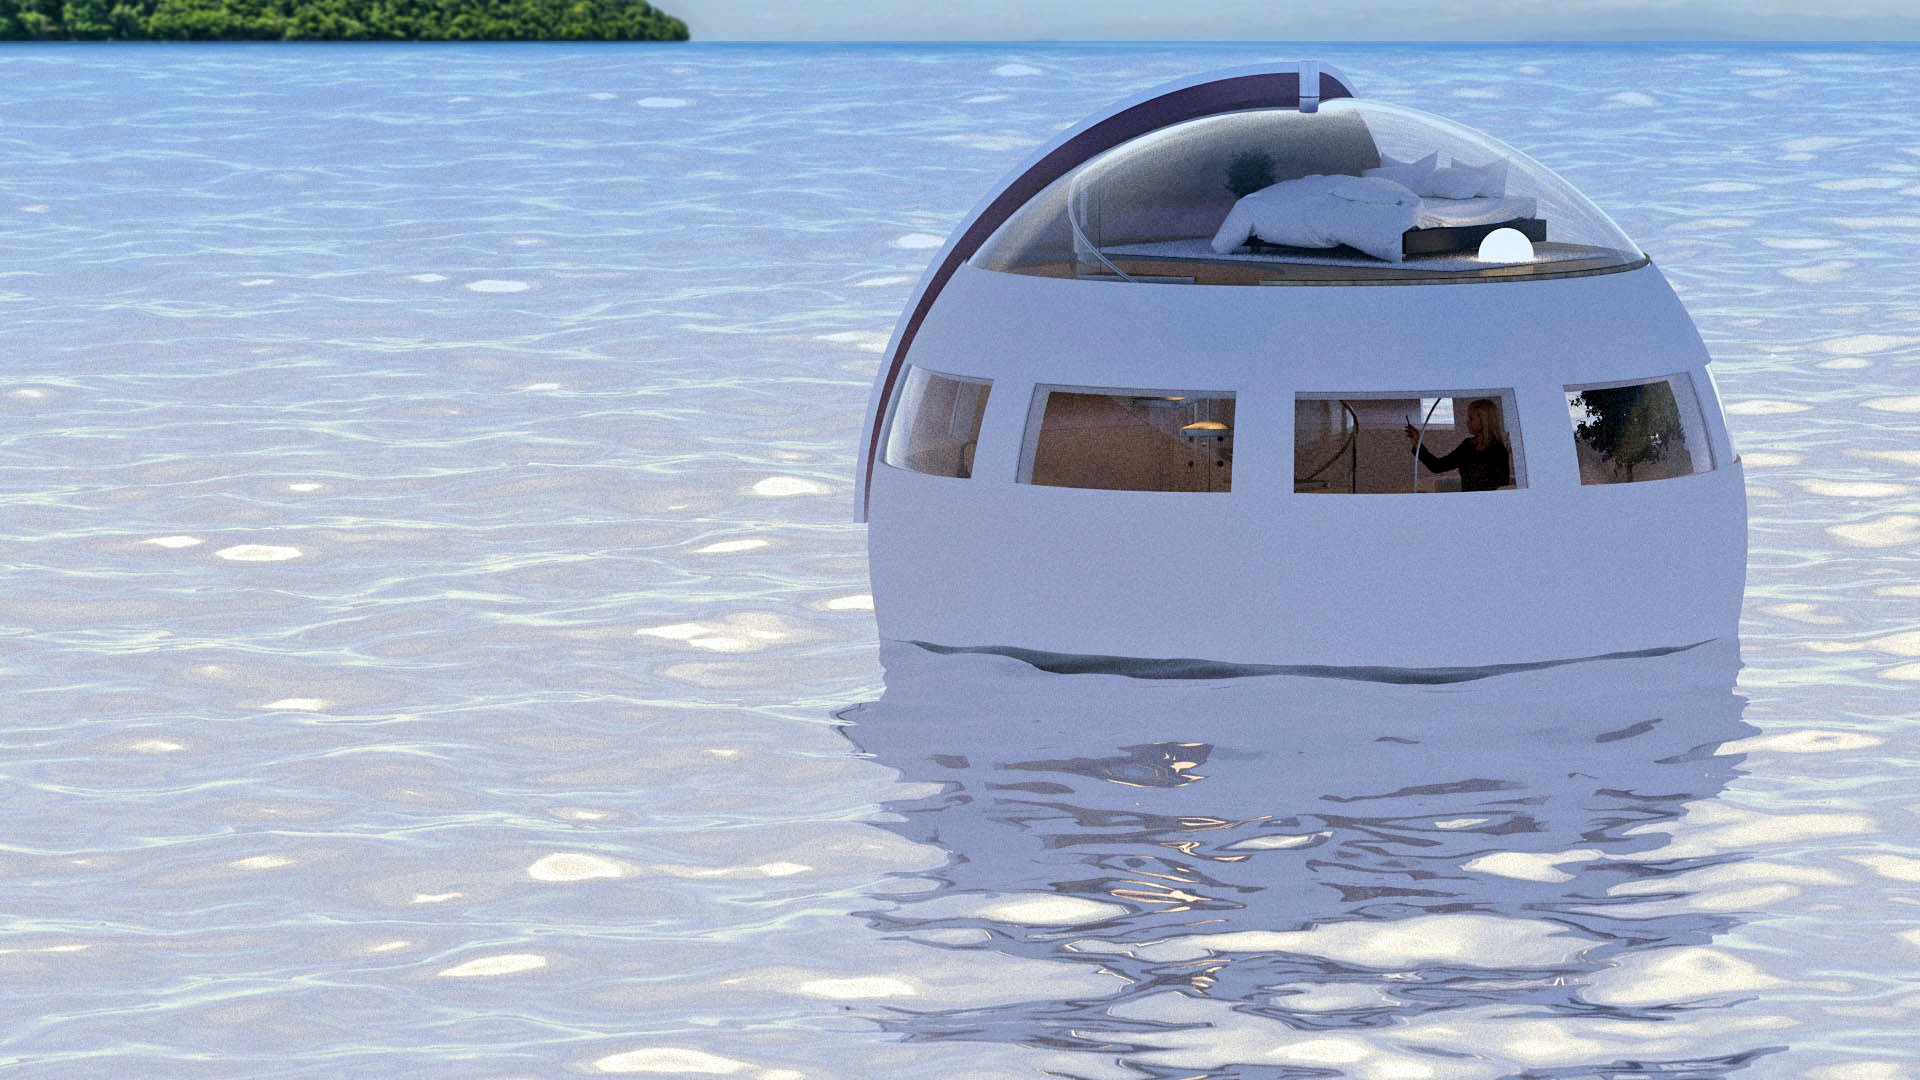 This floating hotel room lets you spend the night in the sea and wake up on a desert island